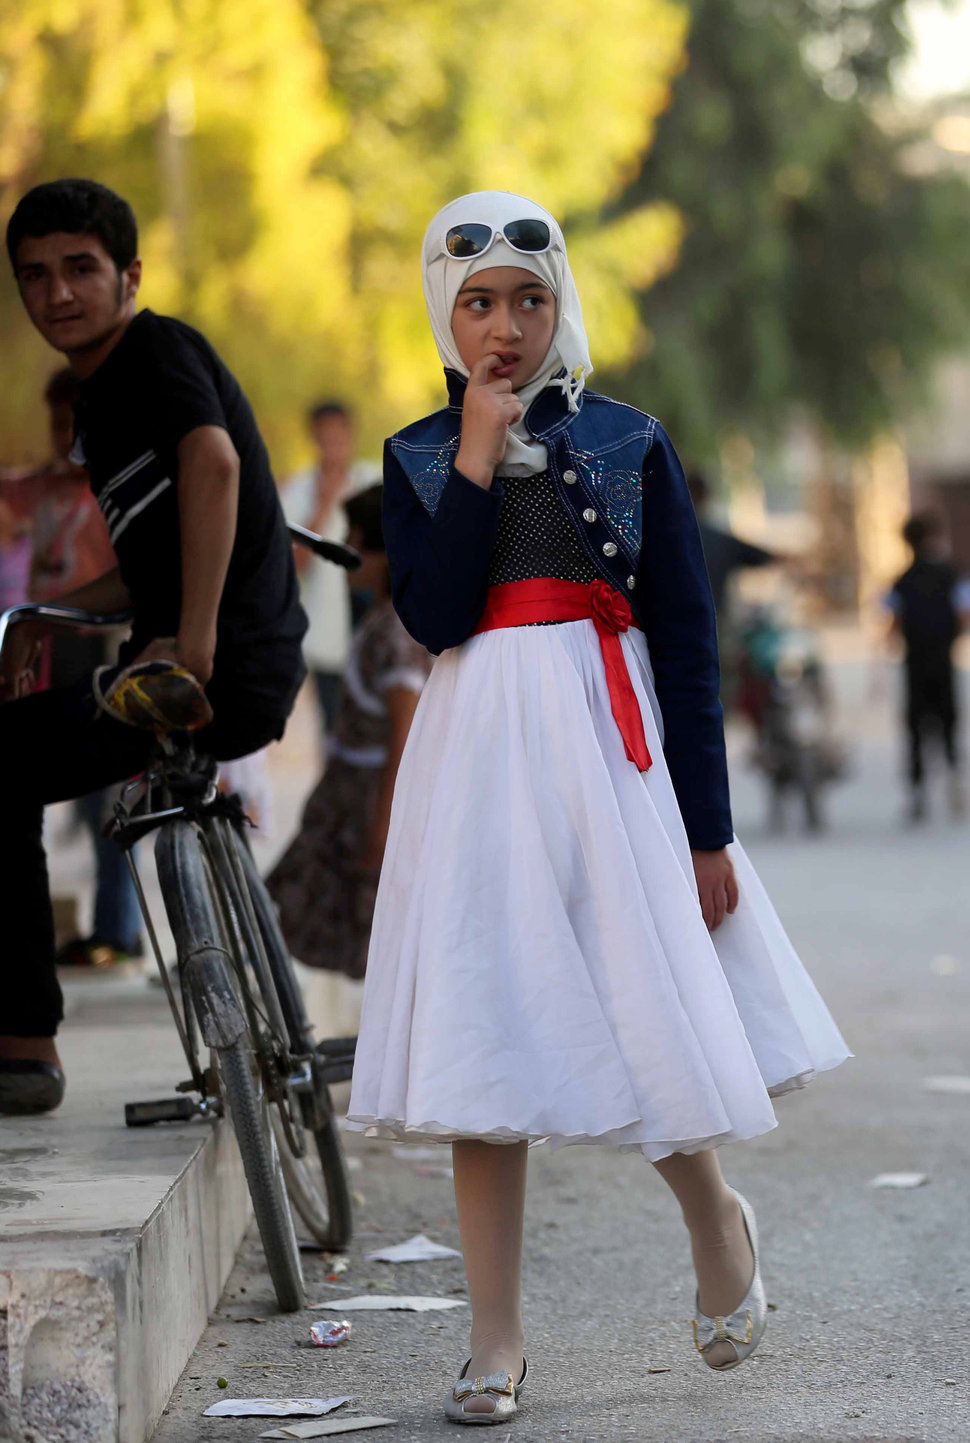 A Syrian girl walks in the street in the Syrian rebel-held town of Arbin, in the eastern Ghouta region on the outskirts of the capital Damascus, as they celebrate the Muslim Eid al-Adha holiday on September 13, 2016, the day after an internally backed ceasefire for Syria came into effect as part of a hard-fought deal to bring an end to the war between rebels and regime fighters.  / AFP / AMER ALMOHIBANY        (Photo credit should read AMER ALMOHIBANY/AFP/Getty Images)